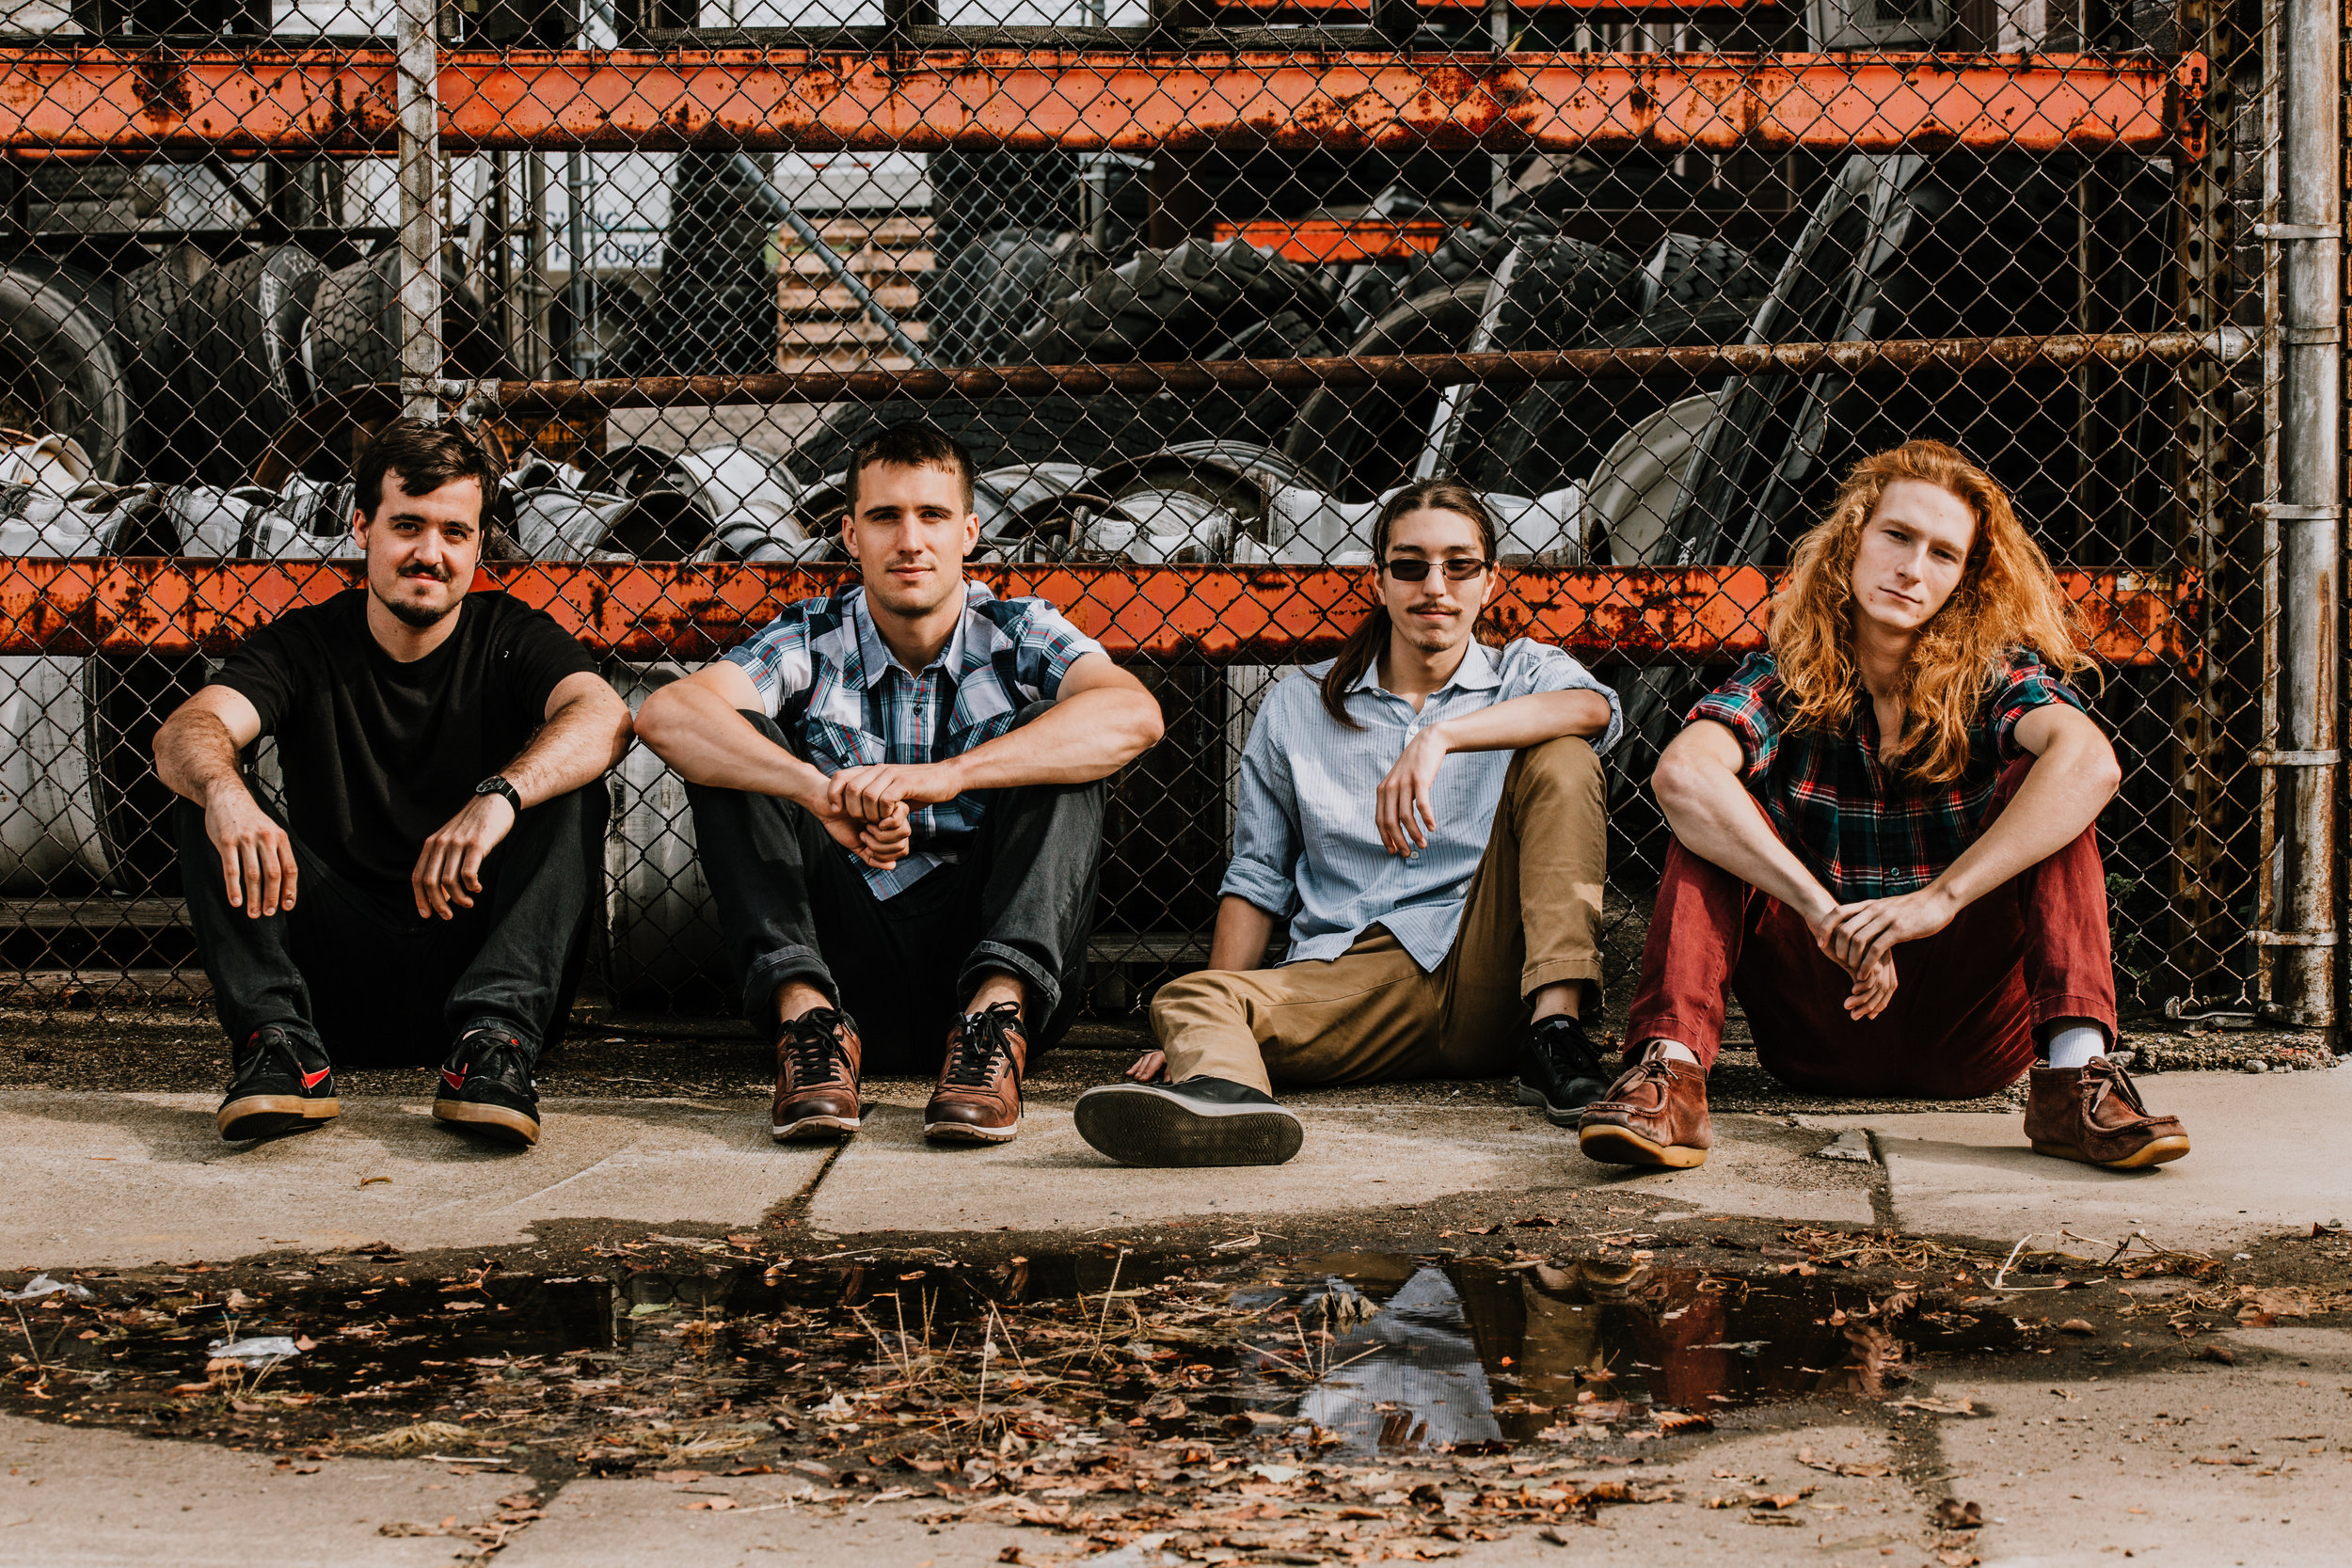 """Chirp chats debut-studio album ahead of Saturday's release party at Blind Pig"" By Kevin Lamb - Thisisagoodsound.com March 2019 -"